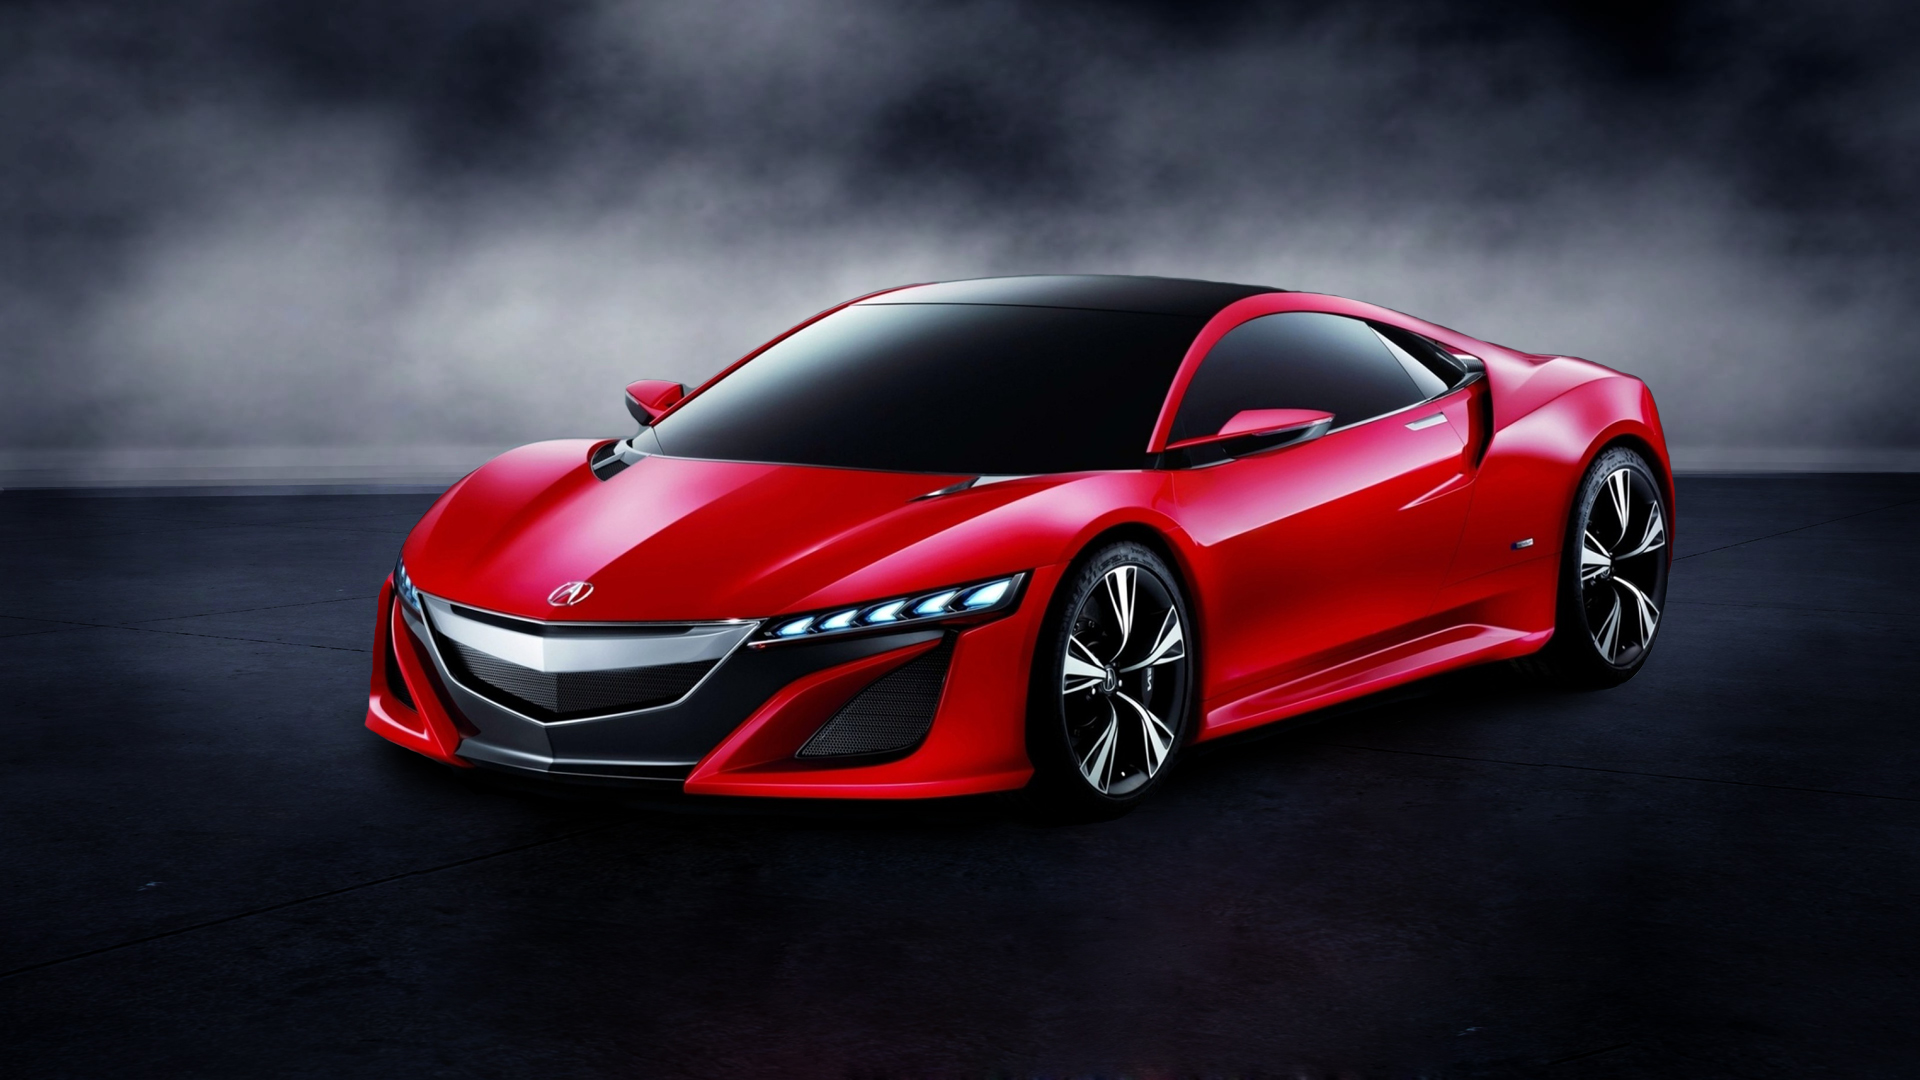 Acura Nsx Hd Black Wallpaper Download Honda Nsx 2017 Red